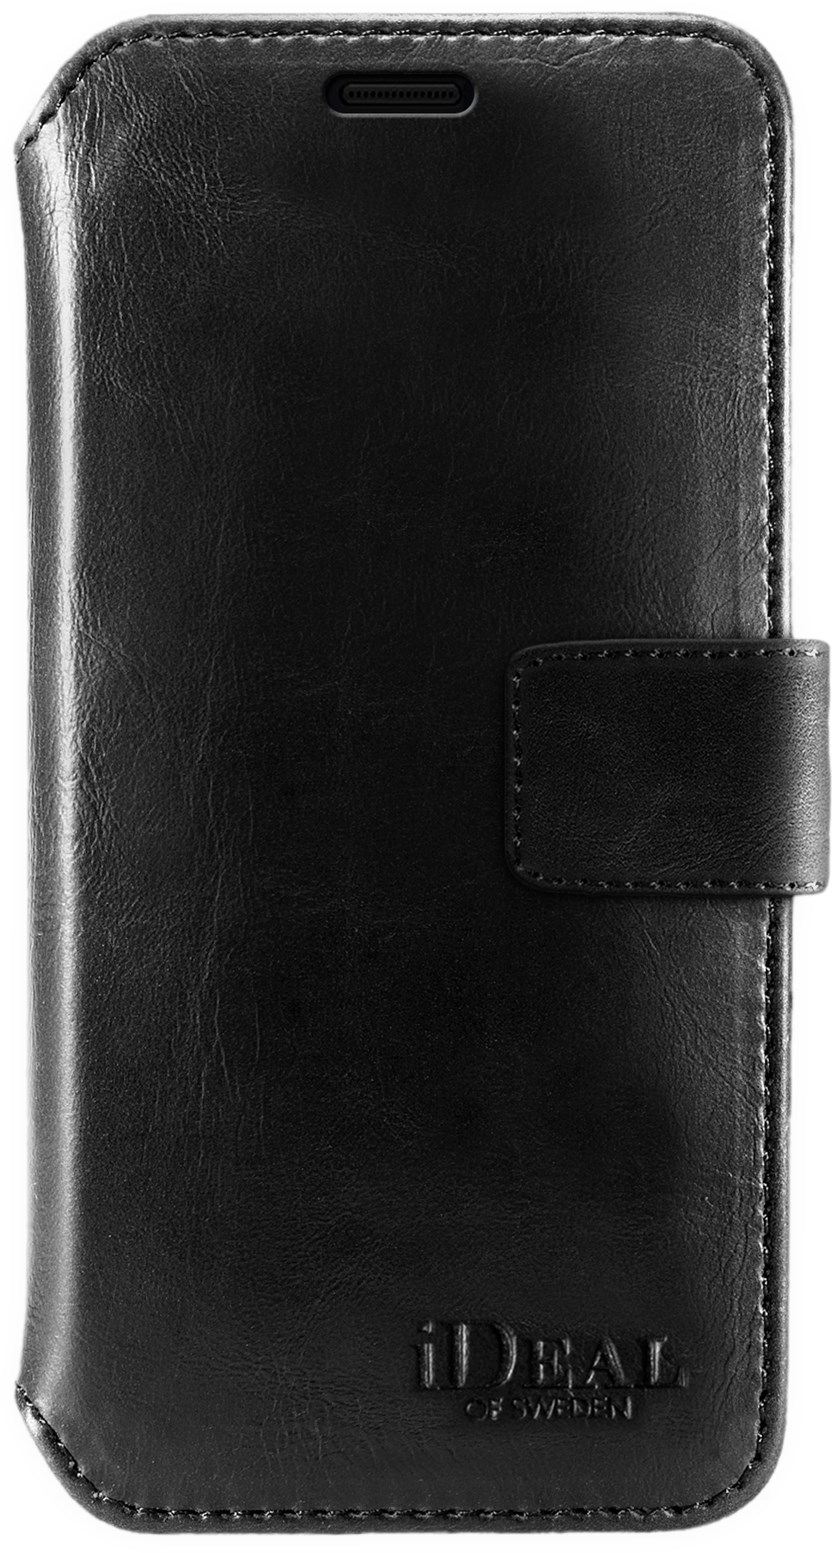 iDeal of Sweden Ideal Sthlm Wallet Samsung Galaxy S10 Plus Black